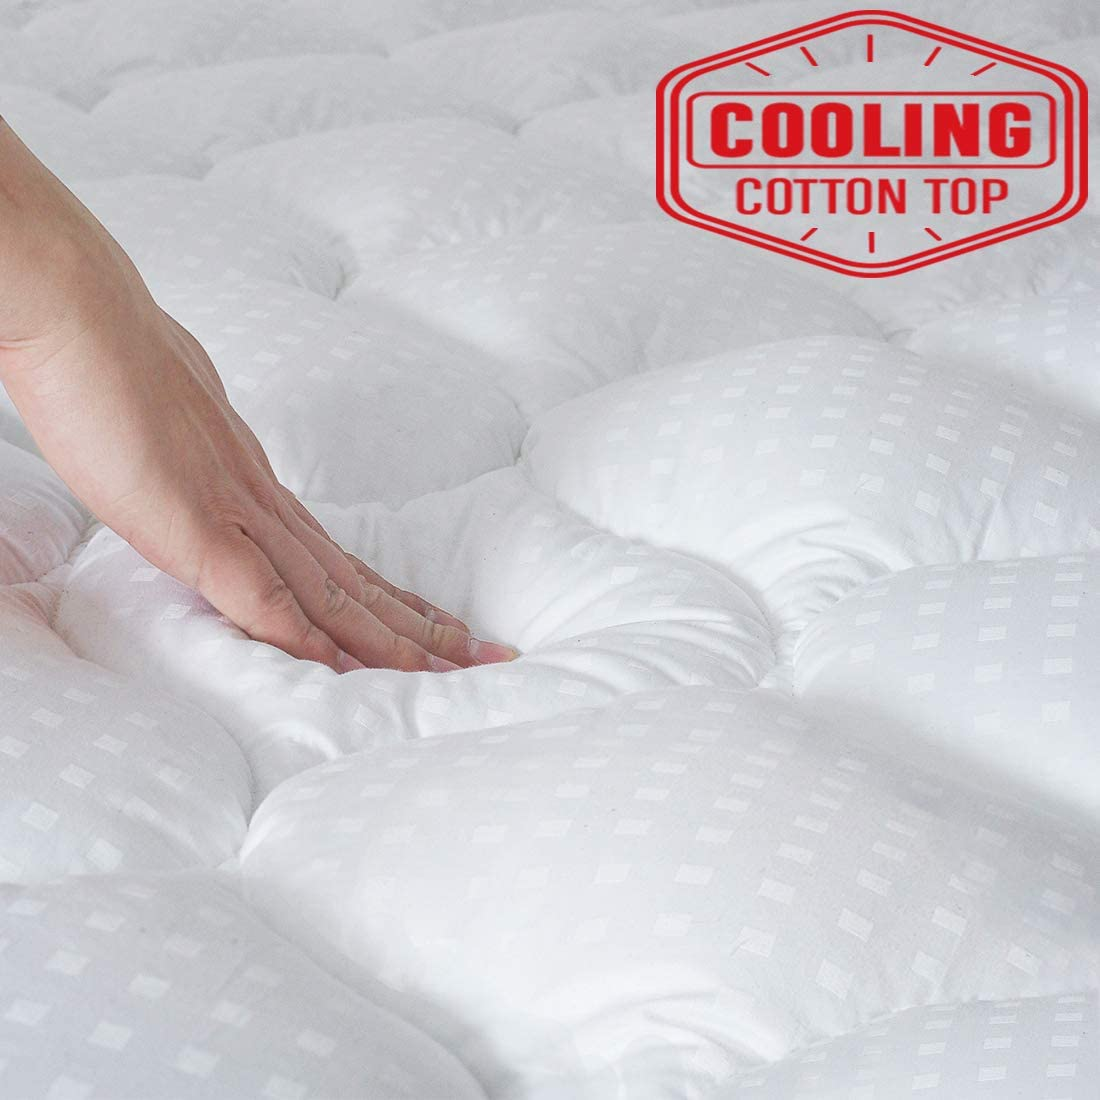 "APRAW Full Mattress Pad Cover Overfilled Quilted Fitted Cooling Mattress Protector Cotton Top PillowTop 8-21"" Deep Pocket Mattress Topper"